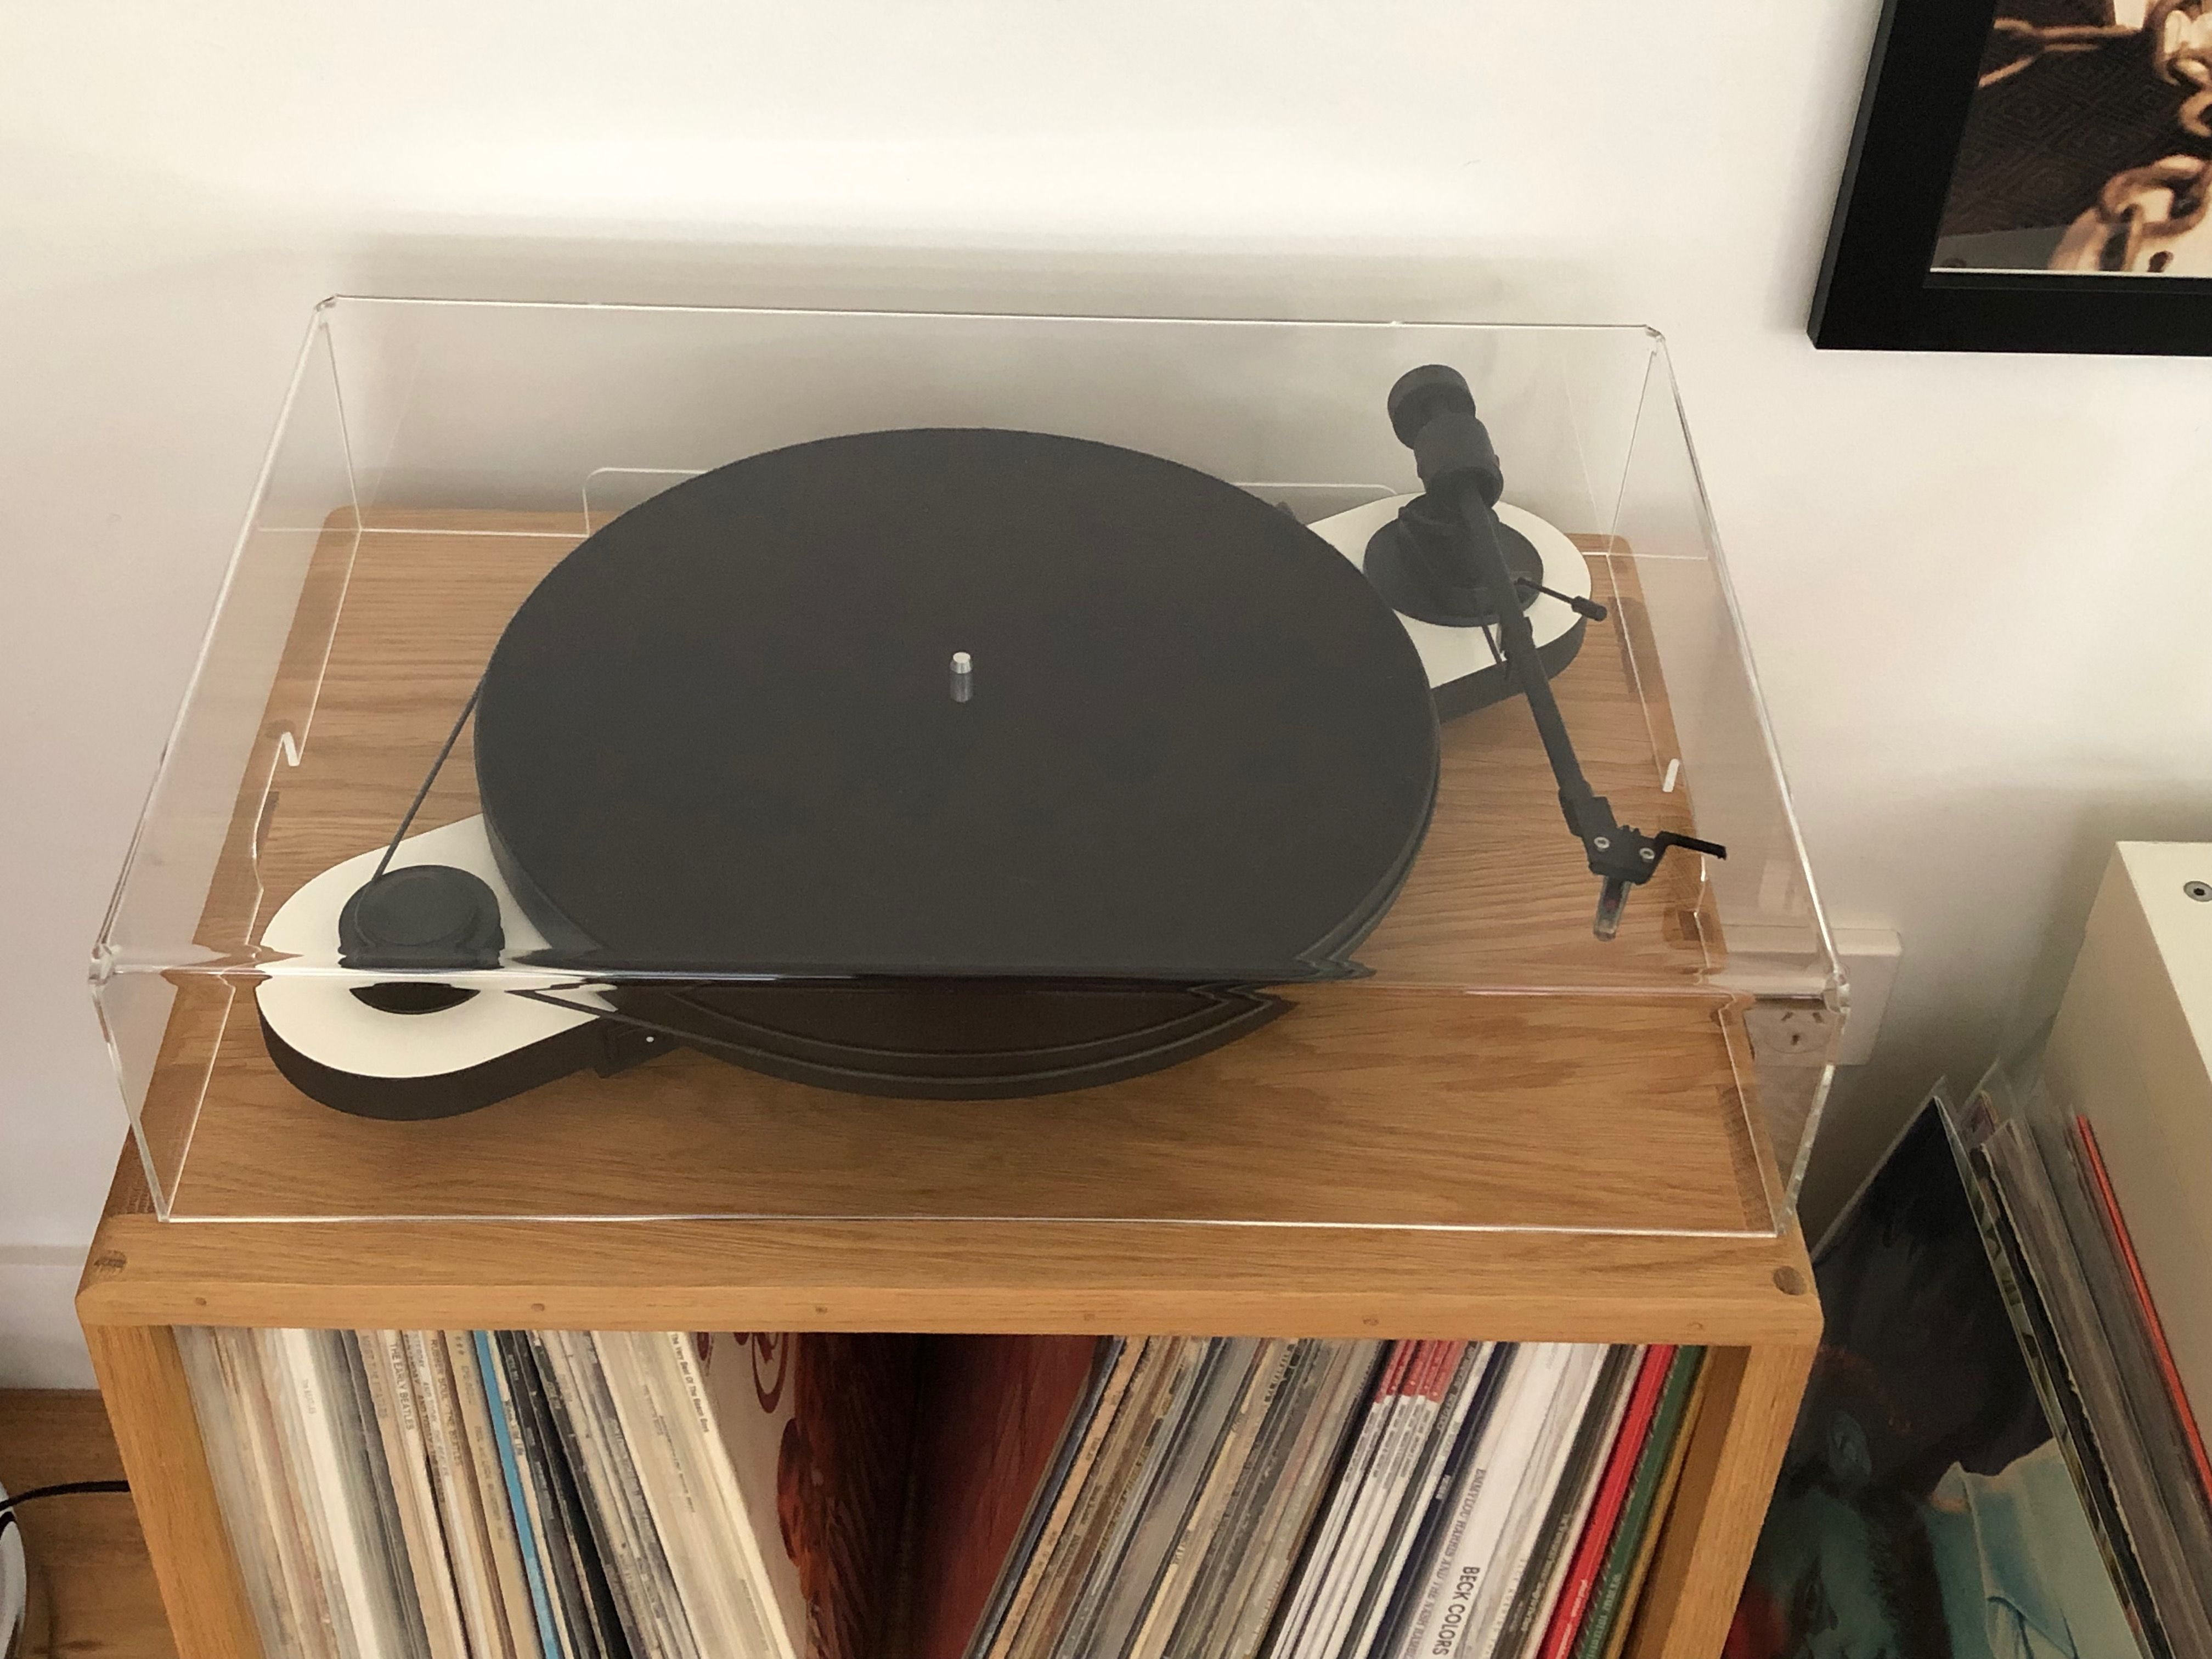 Pro Ject Elemental With Dust Cover On Jevo Vinyl Storage Unit Vinyl Storage Vinyl Storage Unit